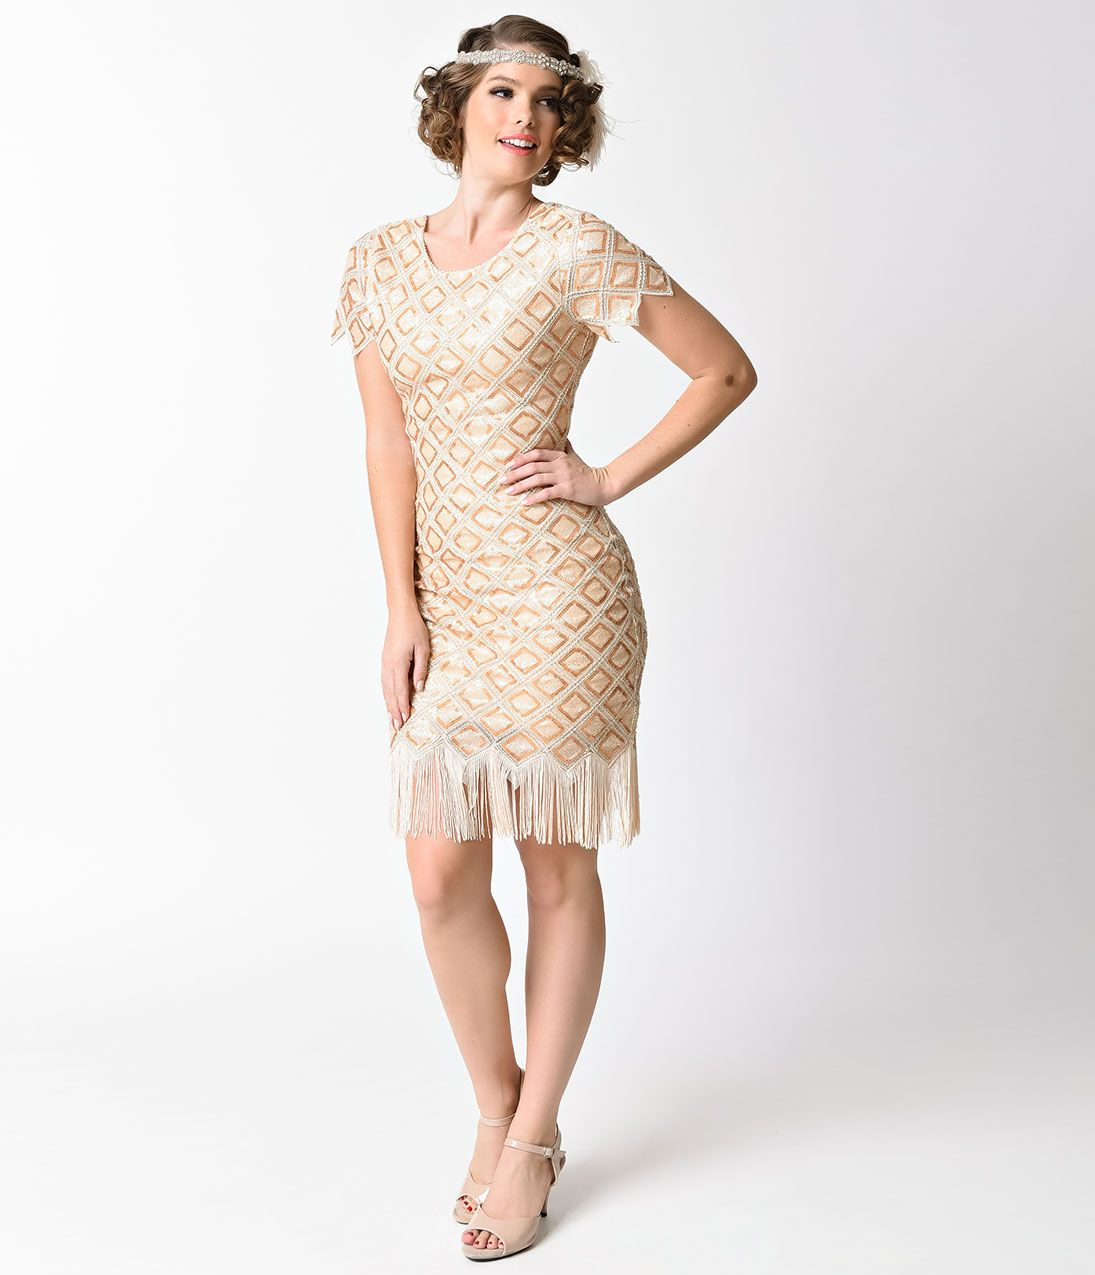 Great Gatsby Dress - Great Gatsby Dresses for Sale | Pinterest ...